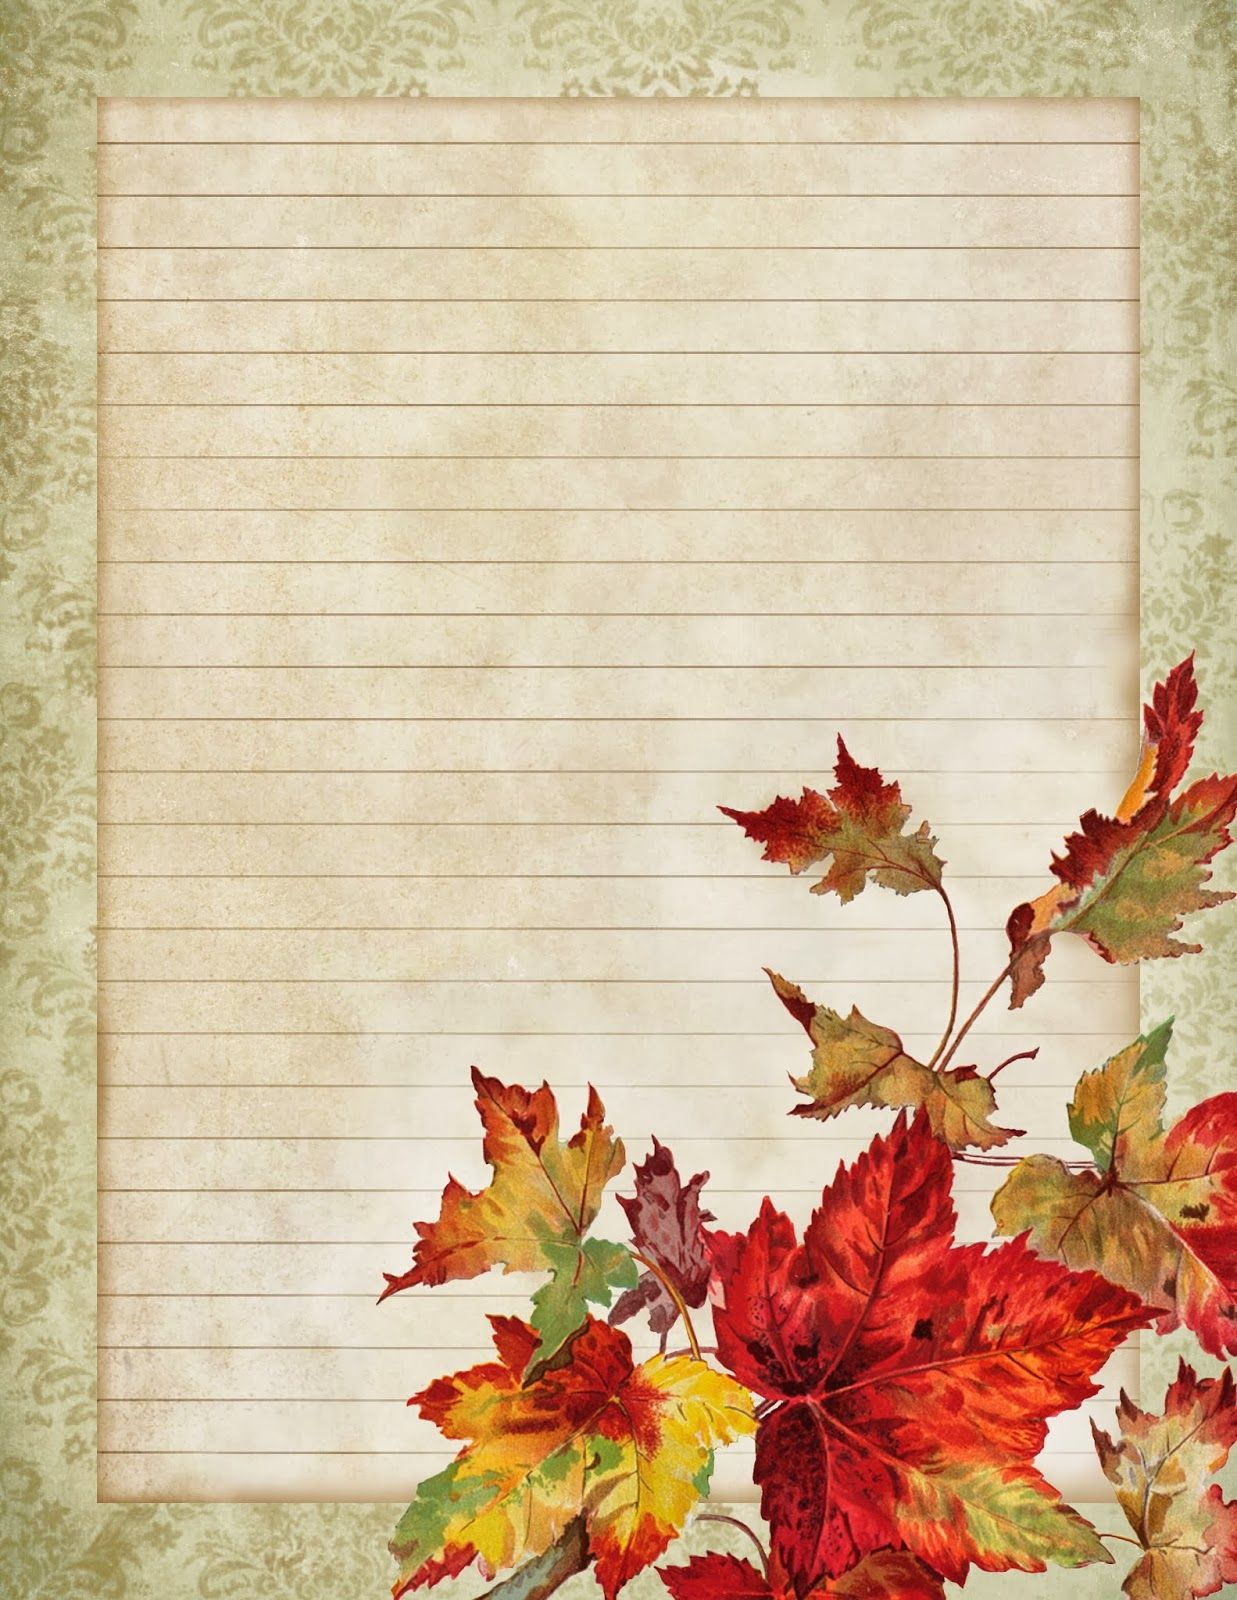 Digitally distressed or antiqued sheet of lined paper free – Free Printable Lined Stationary